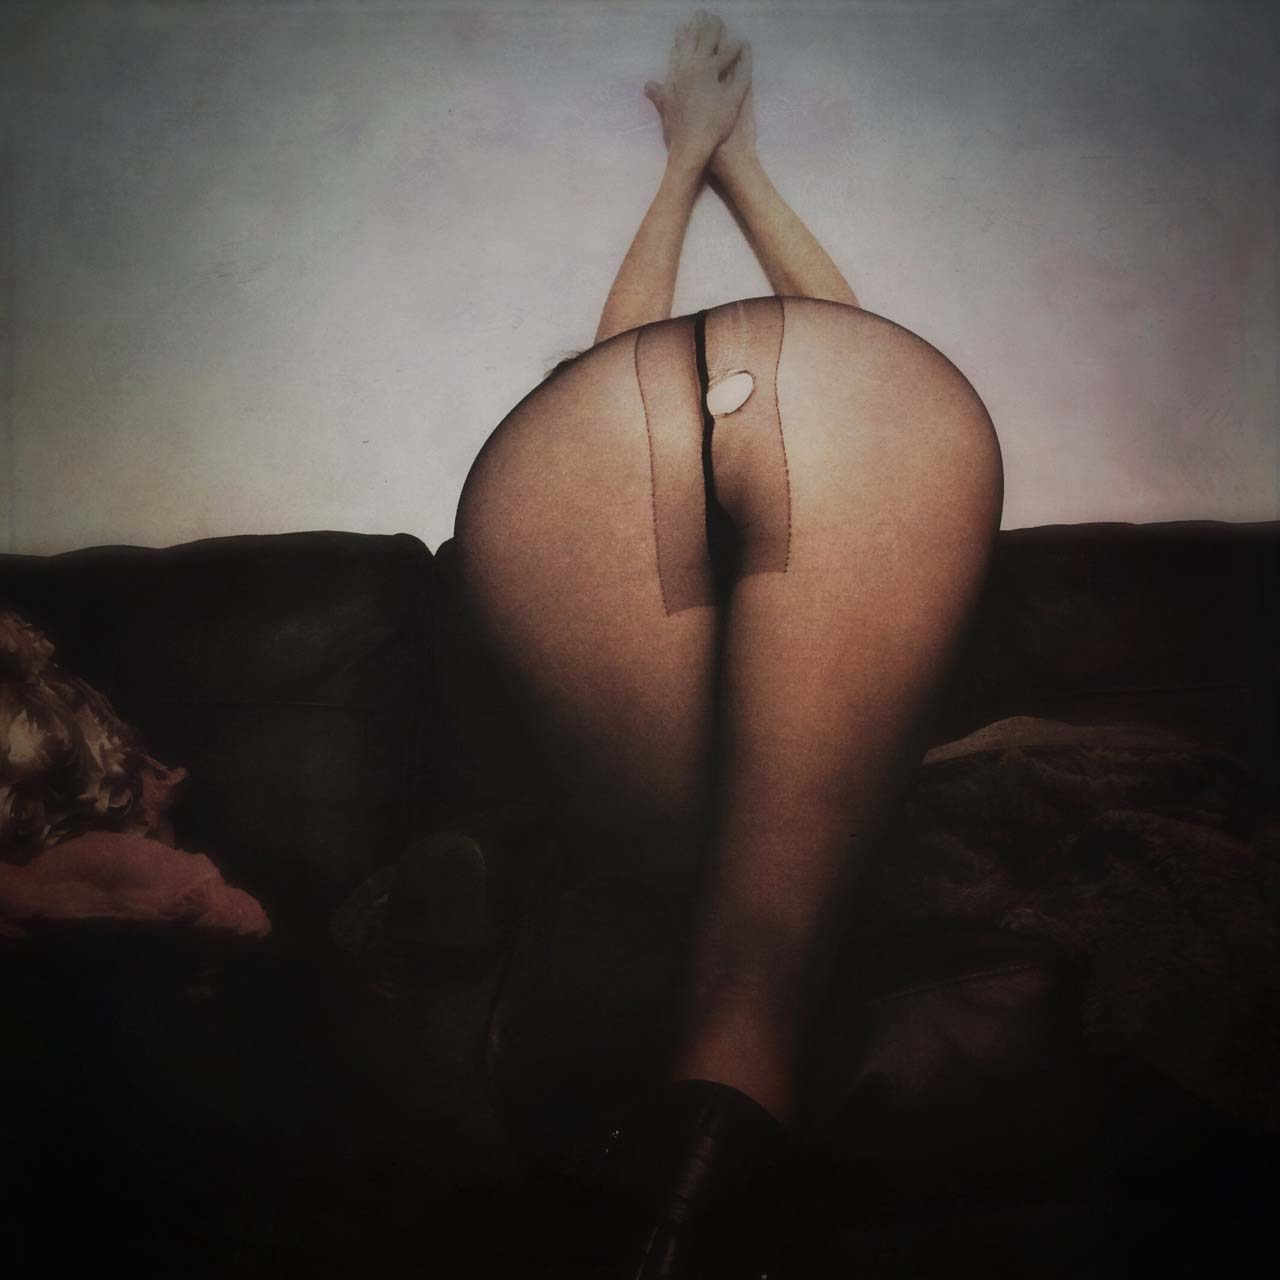 A nude self-portrait by